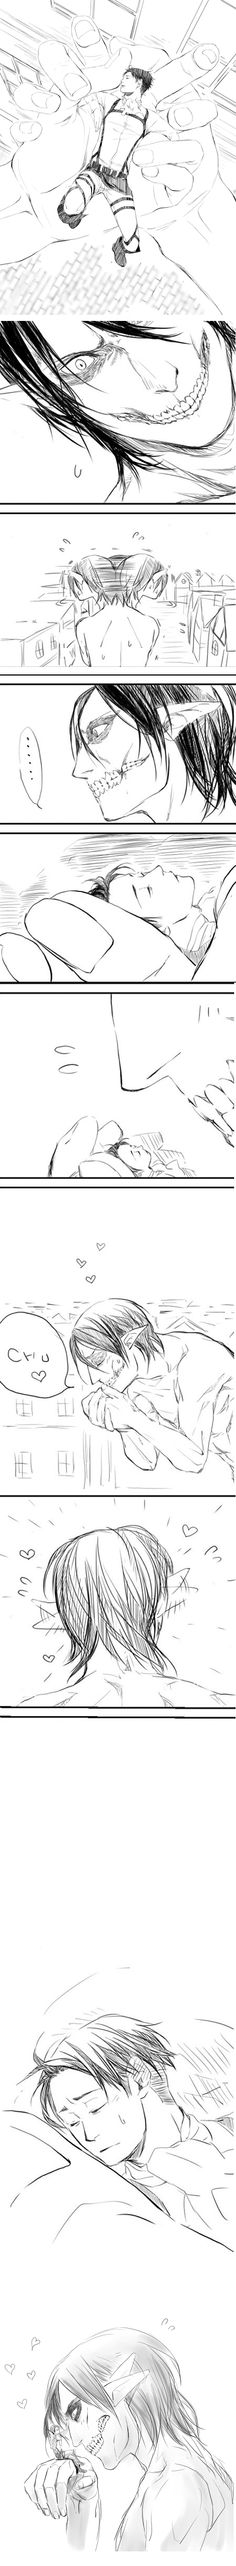 Aww <3 Eren and Levi